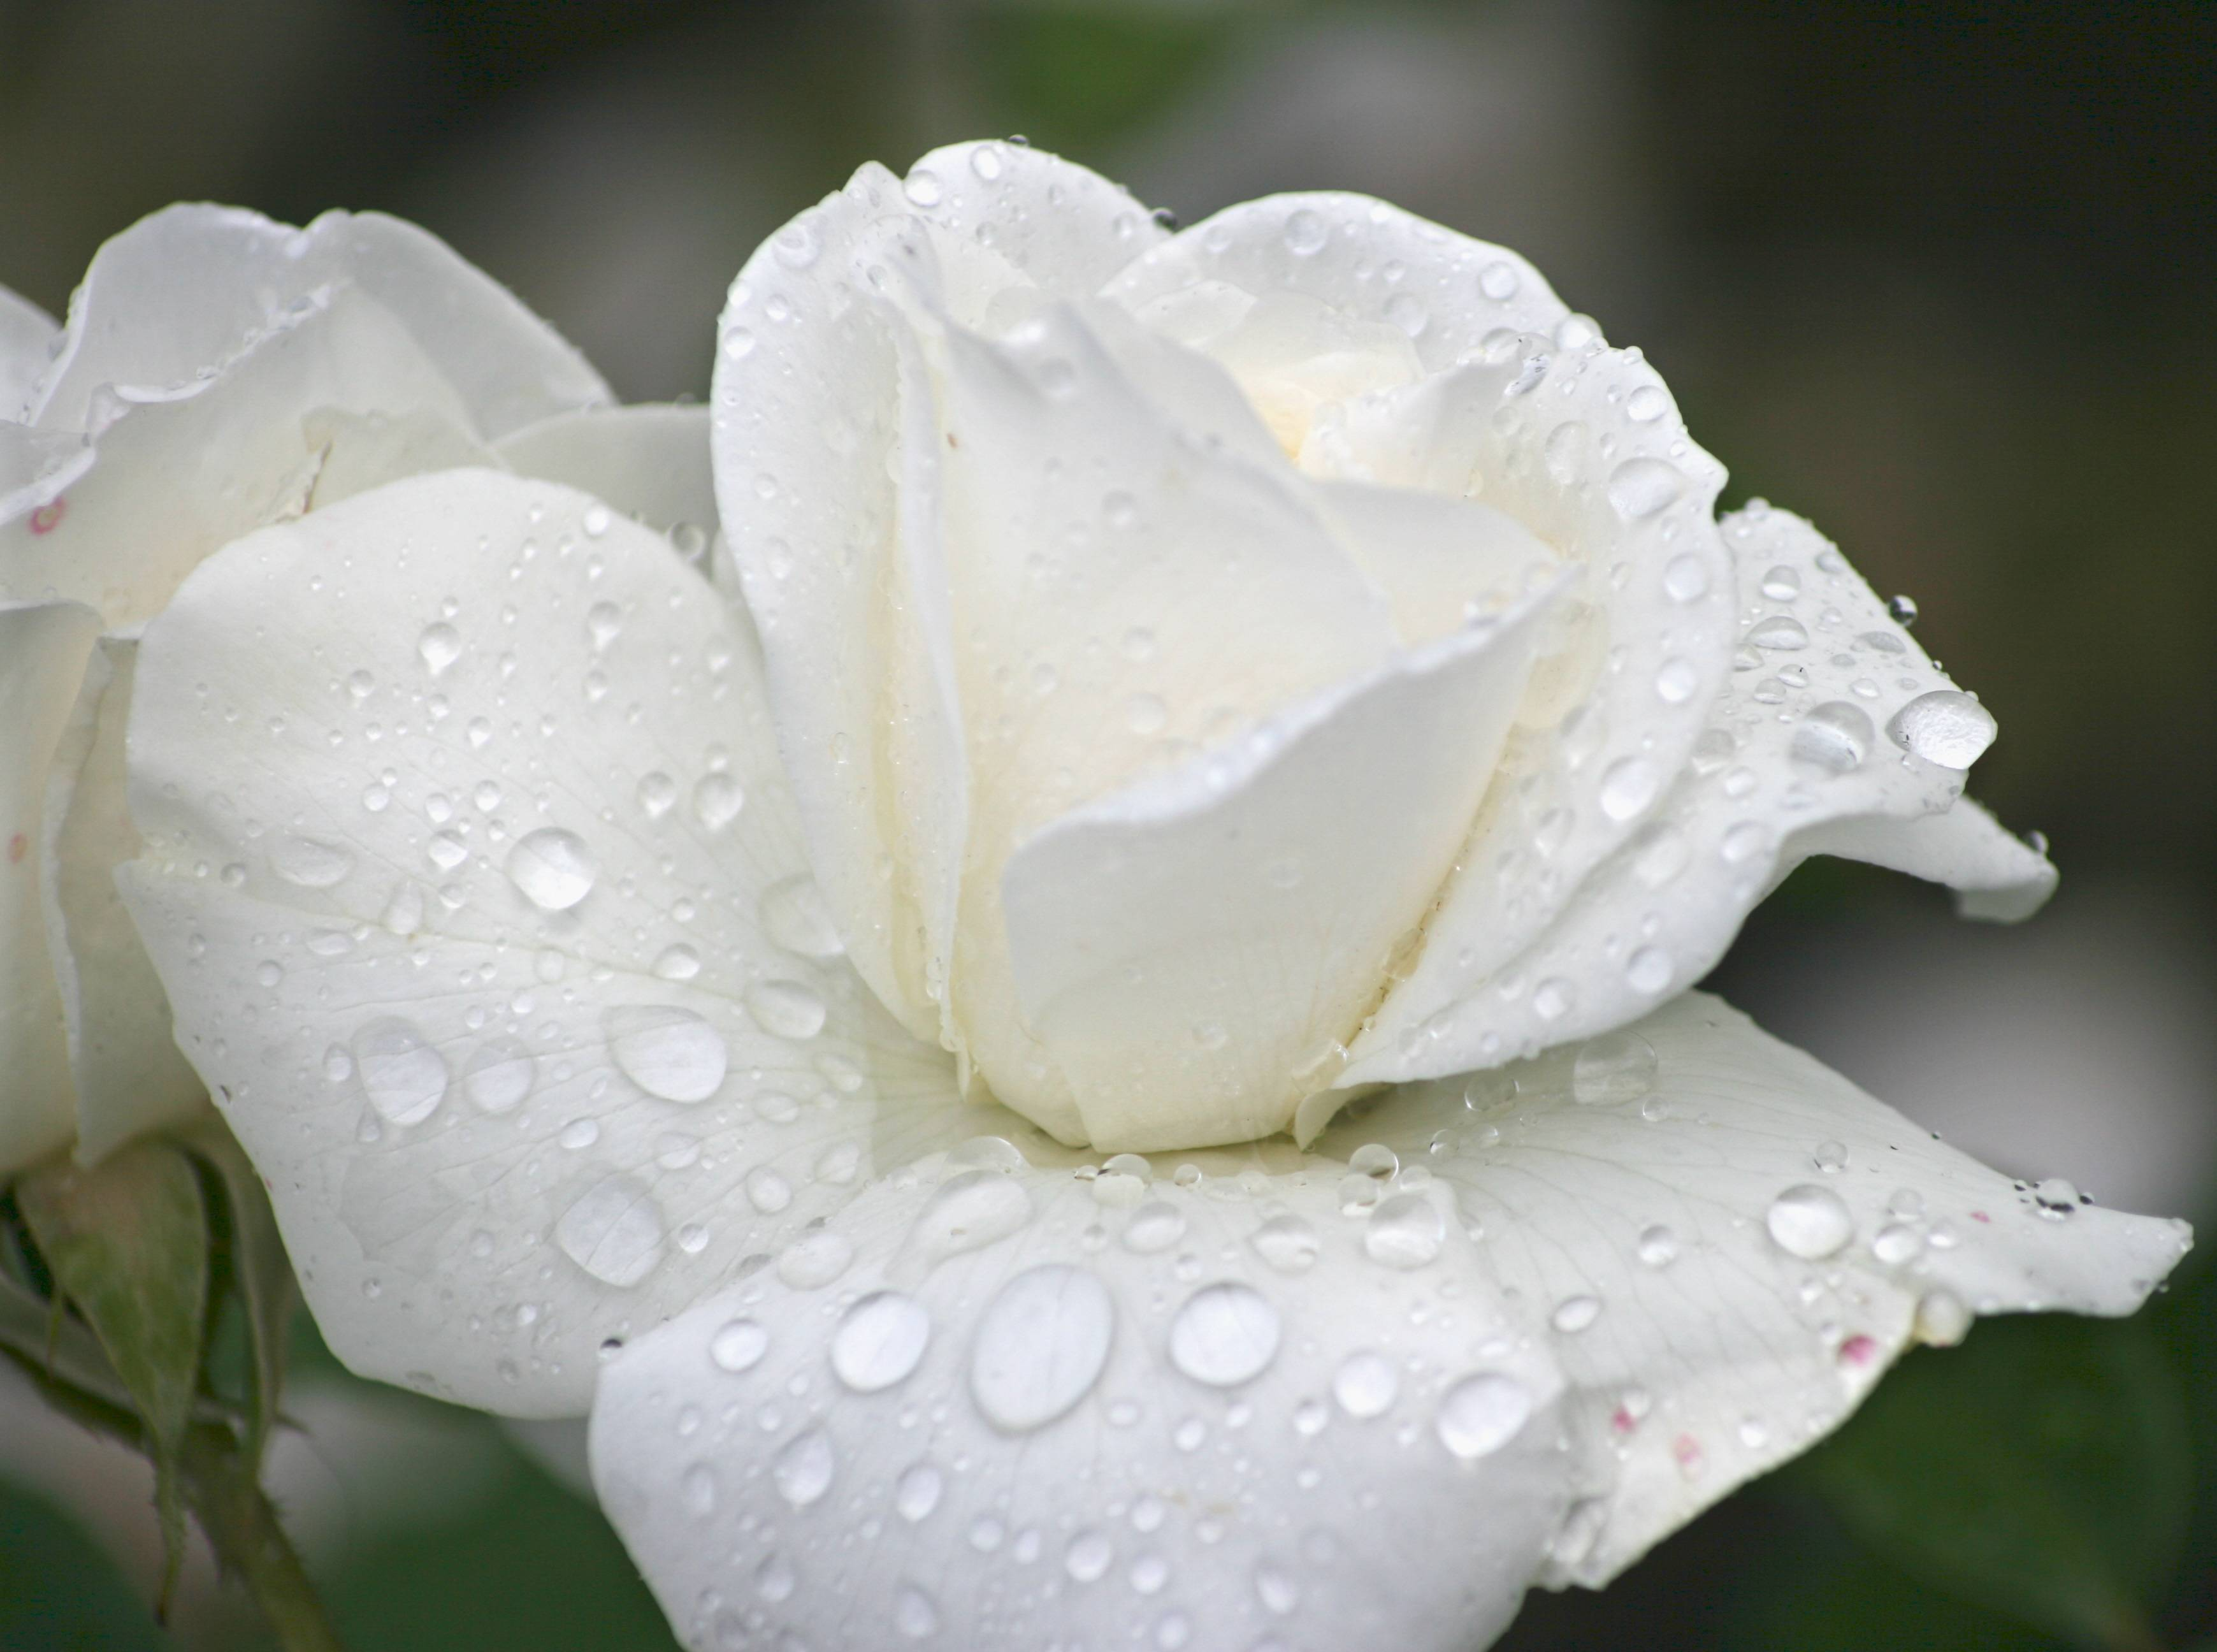 Wallpapers of raindrops wallpaper cave raindrops on rose wallpaper rose wallpaper altavistaventures Image collections